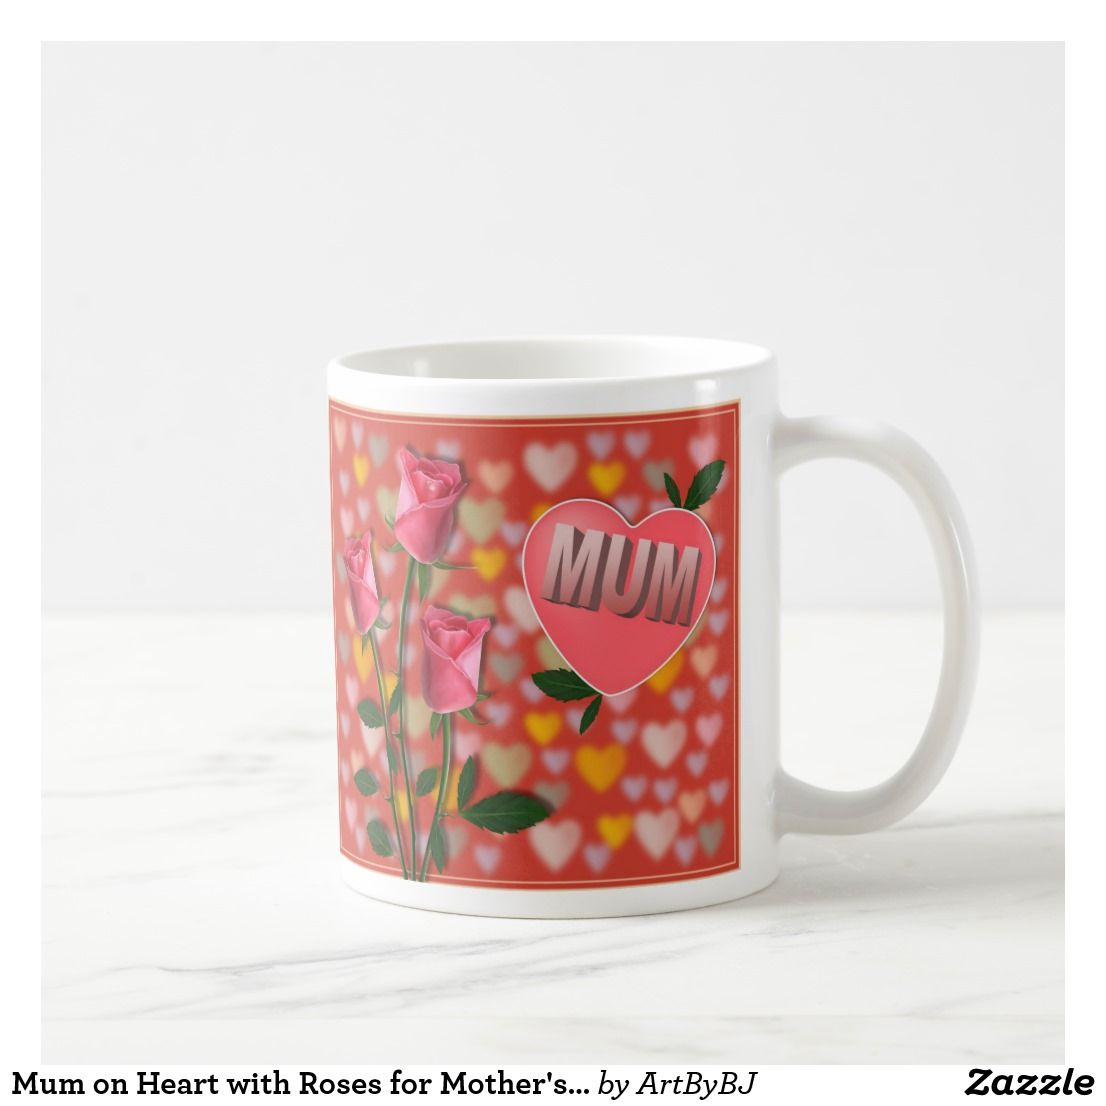 Mum With Coffee Day On For Mug Roses Heart Mother's 8P0wOkn